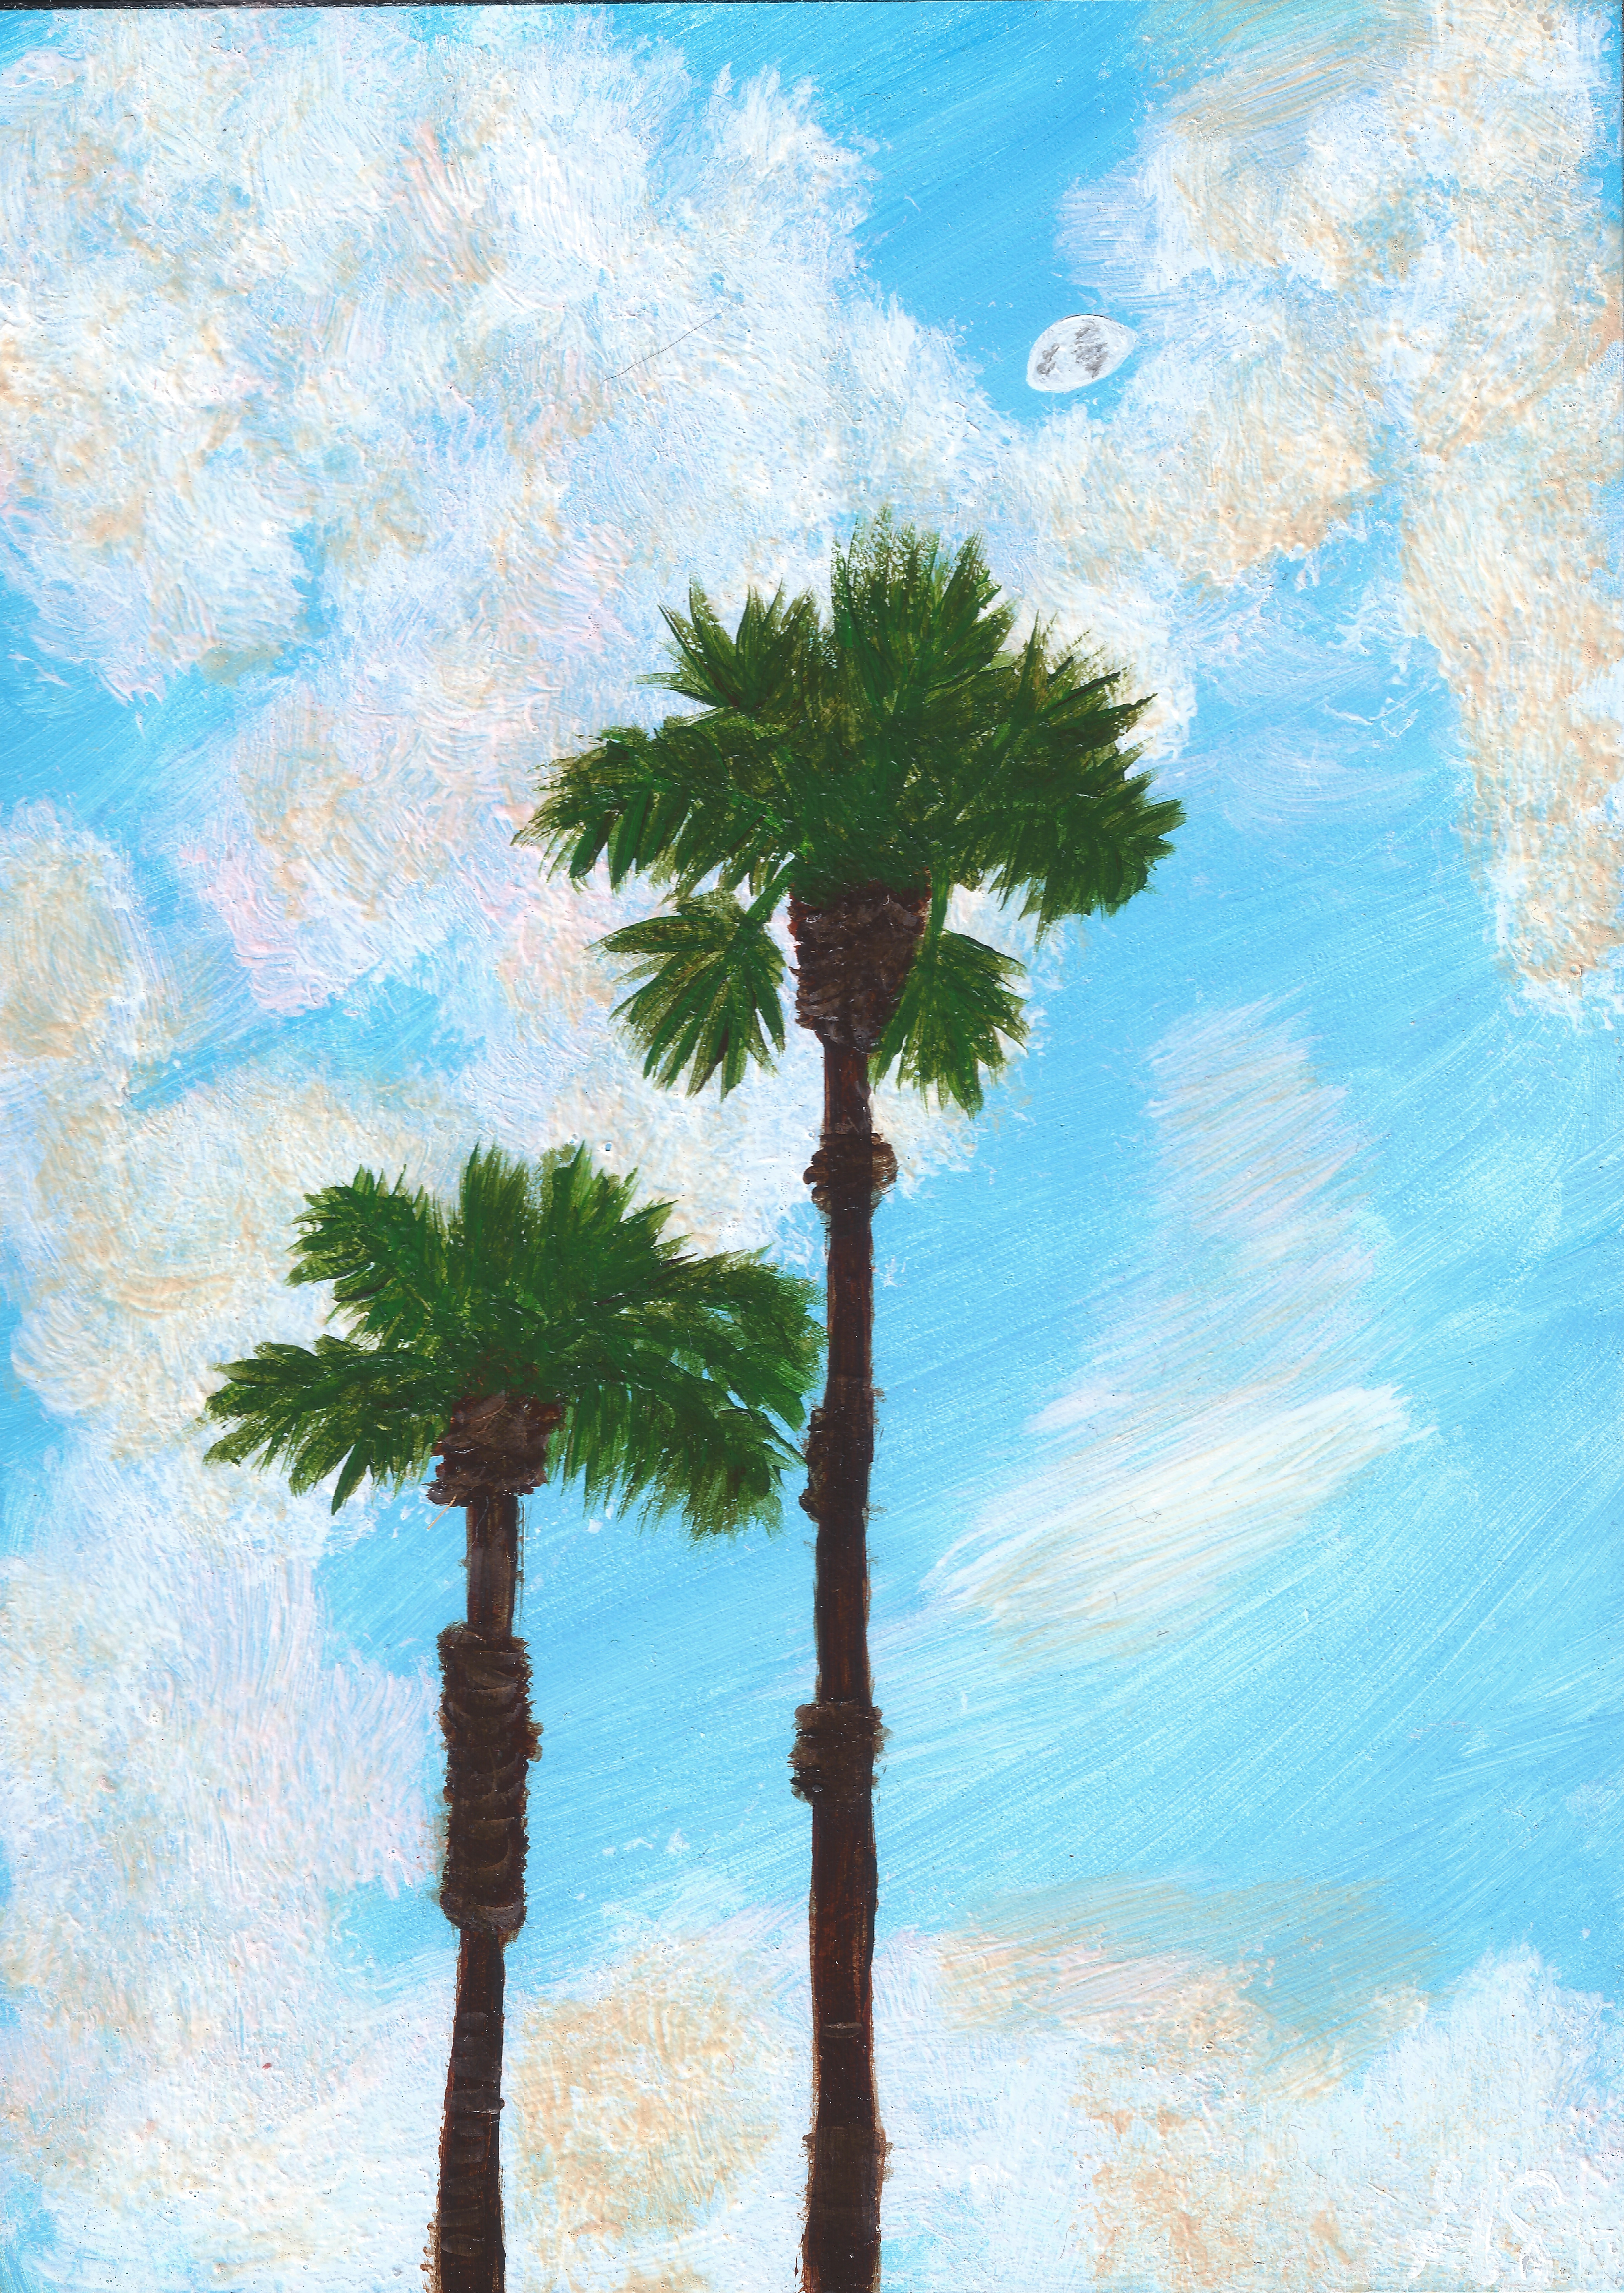 Two Palms, 2017